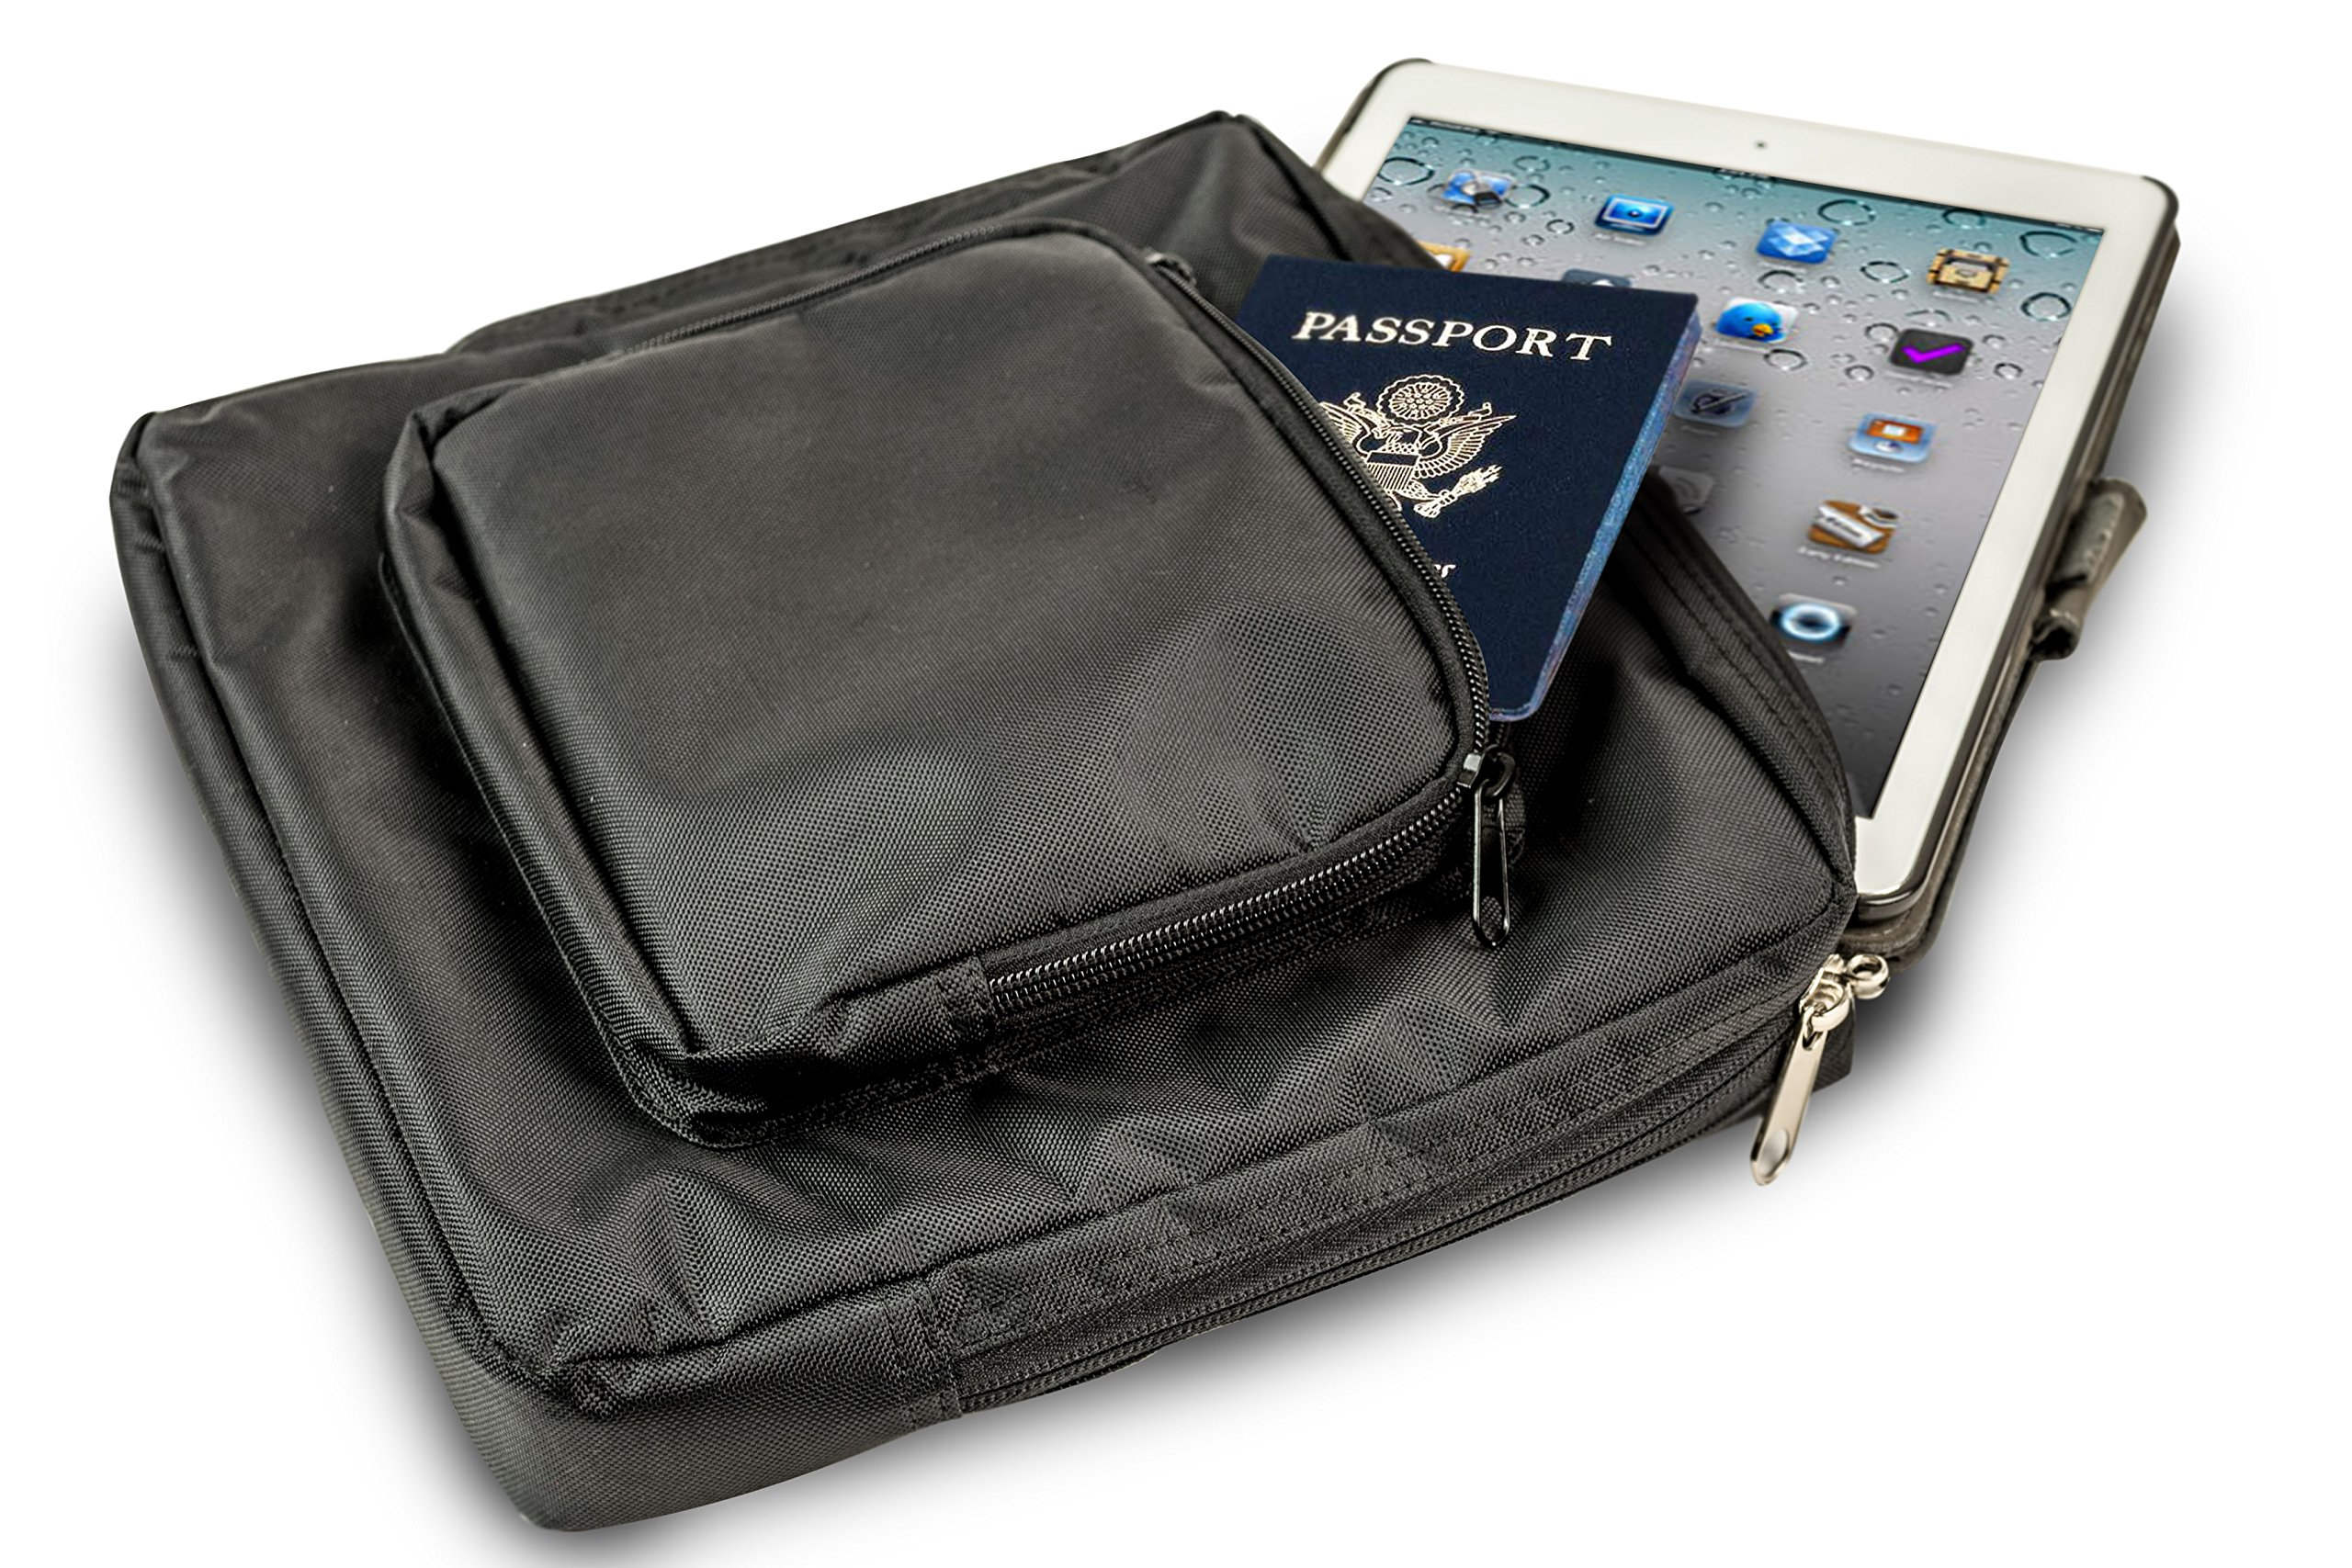 AutoExec AETote-09 Black/Grey File Tote with One Cooler and One Tablet Case by AutoExec (Image #3)